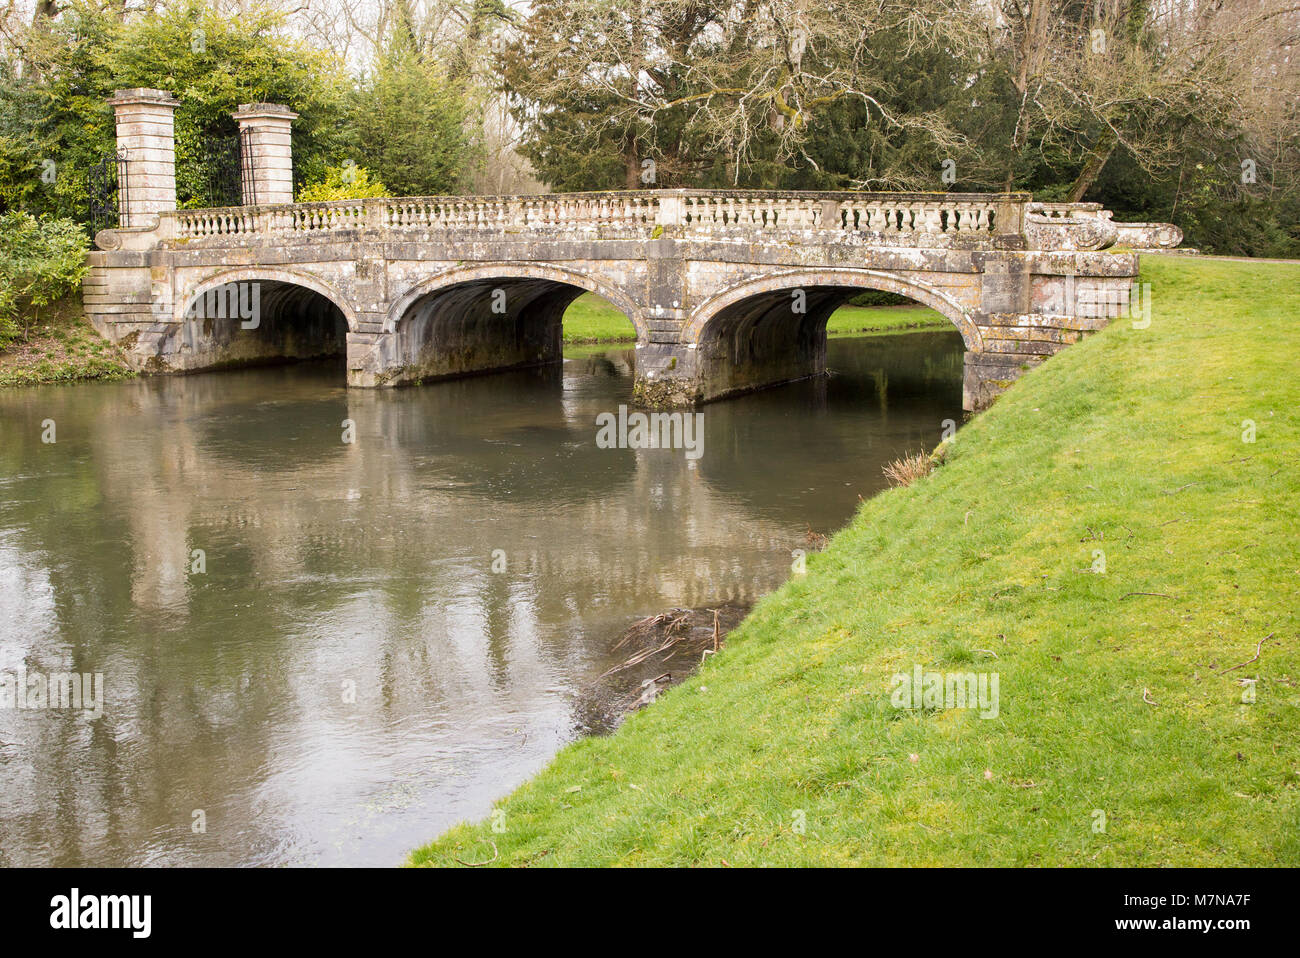 Ancient Weir Bridge over River Avon in Amesbury Abbey Park, Amesbury, Wiltshire, England, UK - Stock Image